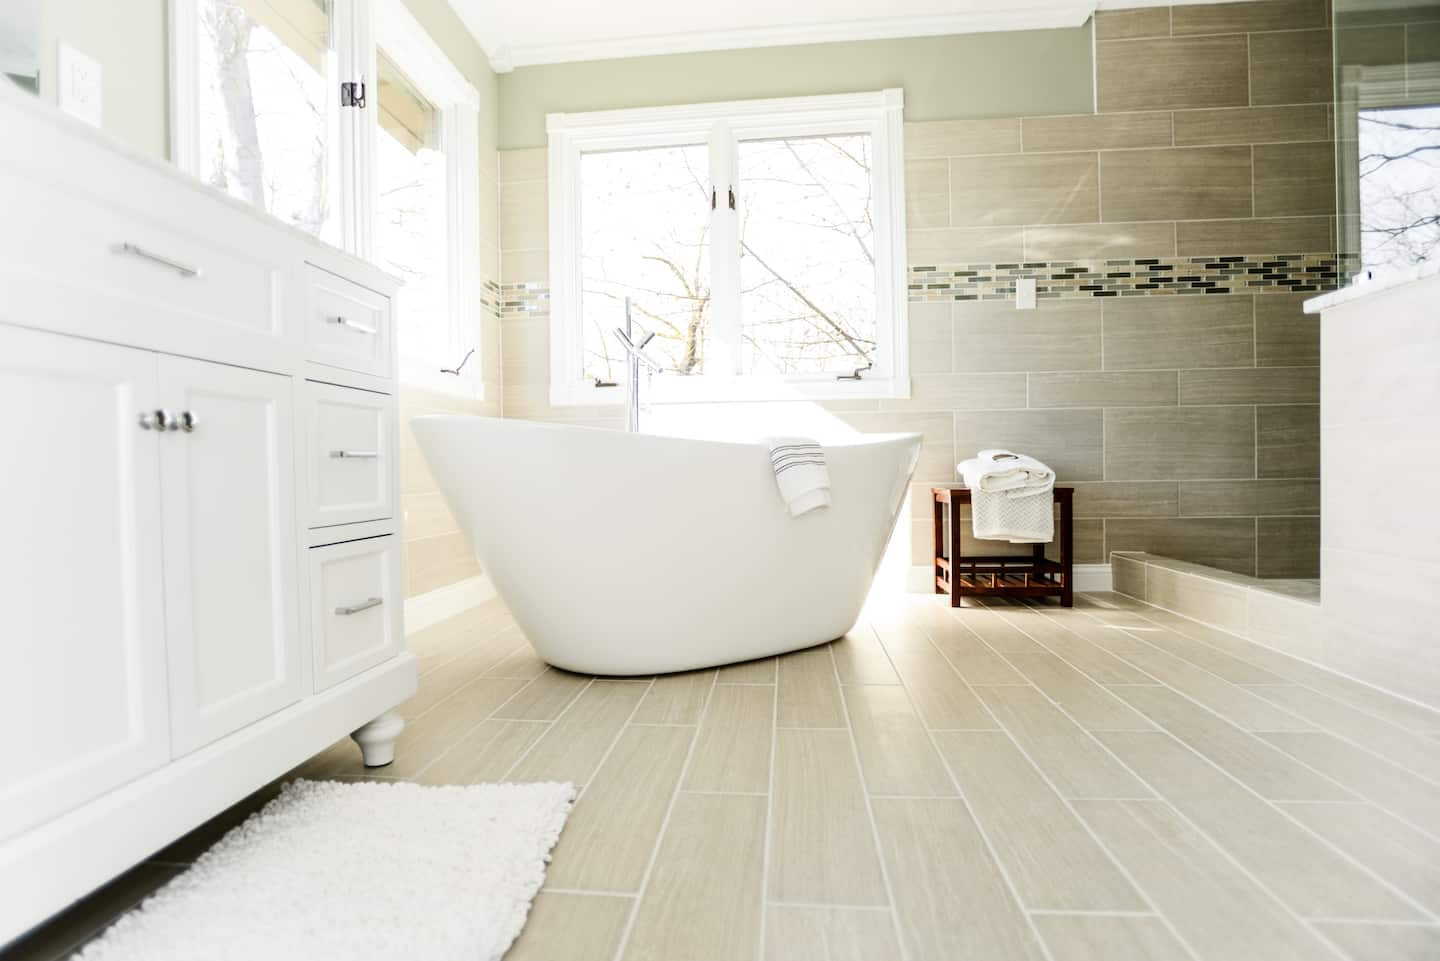 Bathroom Remodel Cost Raleigh how much does a bathroom remodel cost? | angie's list